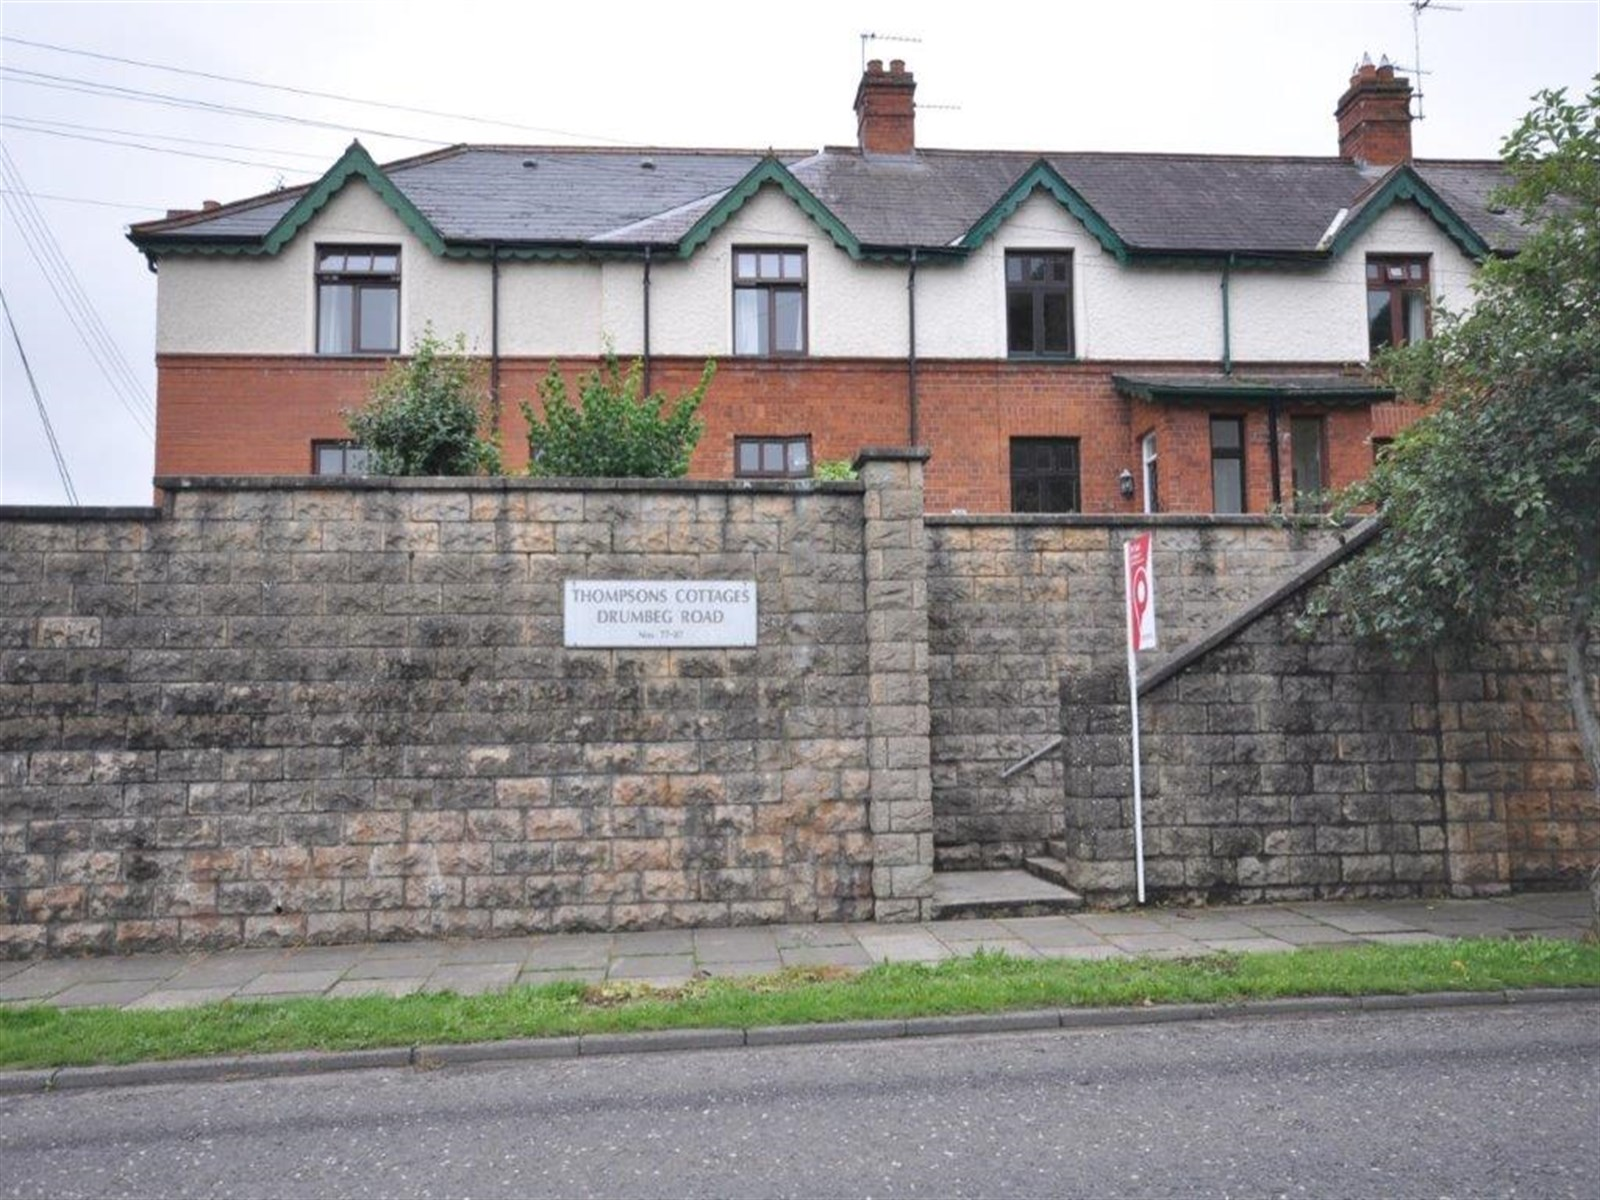 5 Thompsons Cottages, 79 Drumbeg Road, Belfast, BT17 9LE